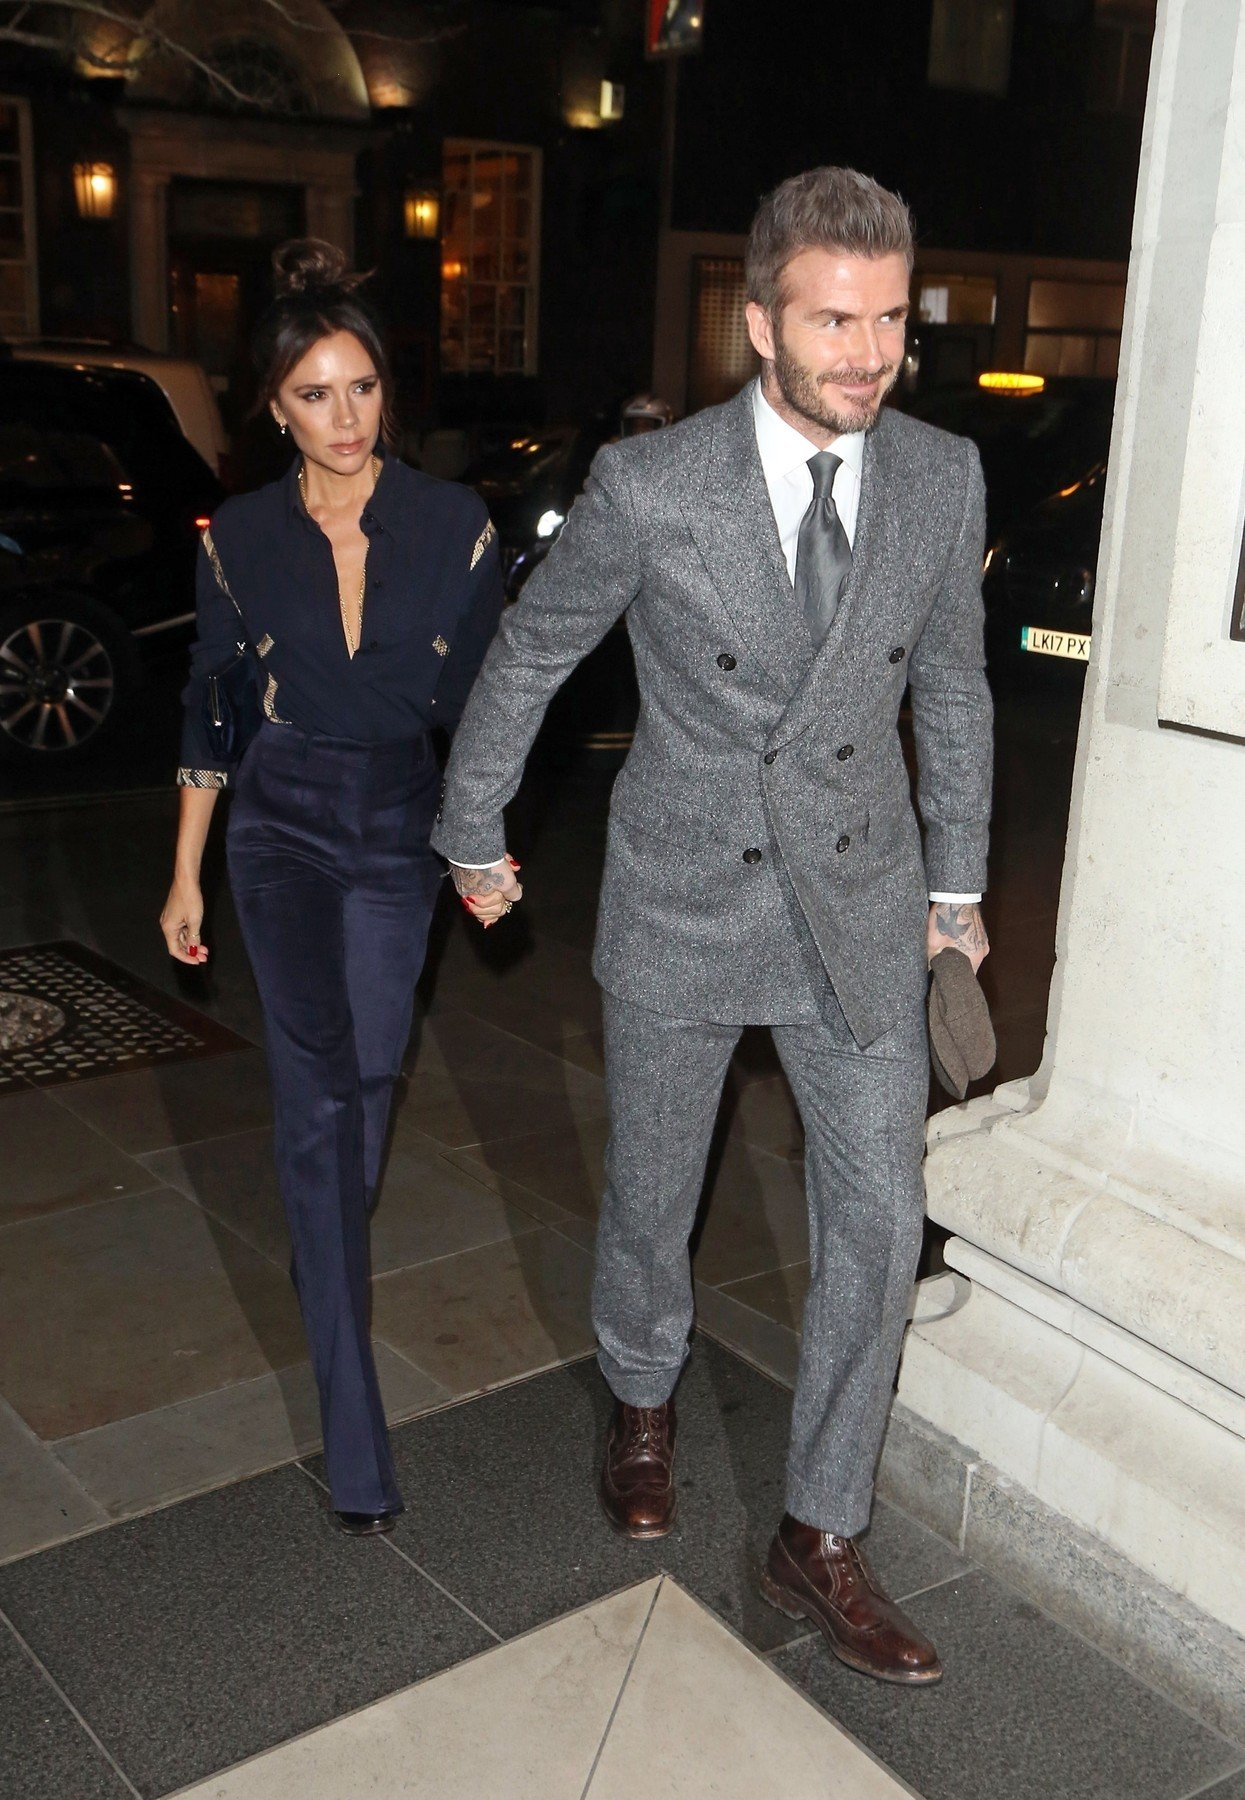 BGUK_1450950 - London, UNITED KINGDOM  - Victoria and David Beckham seen arriving at The Mens GQ Dinner to celebrate London Fashion Week in London. Victoria and David were seen arriving hand in hand at Brasserie of Light restaurant in Selfridges.  Pictured: David Beckham, Victoria Beckham    *UK Clients - Pictures Containing Children Please Pixelate Face Prior To Publication*, Image: 405734429, License: Rights-managed, Restrictions: , Model Release: no, Credit line: Profimedia, Xposurephotos